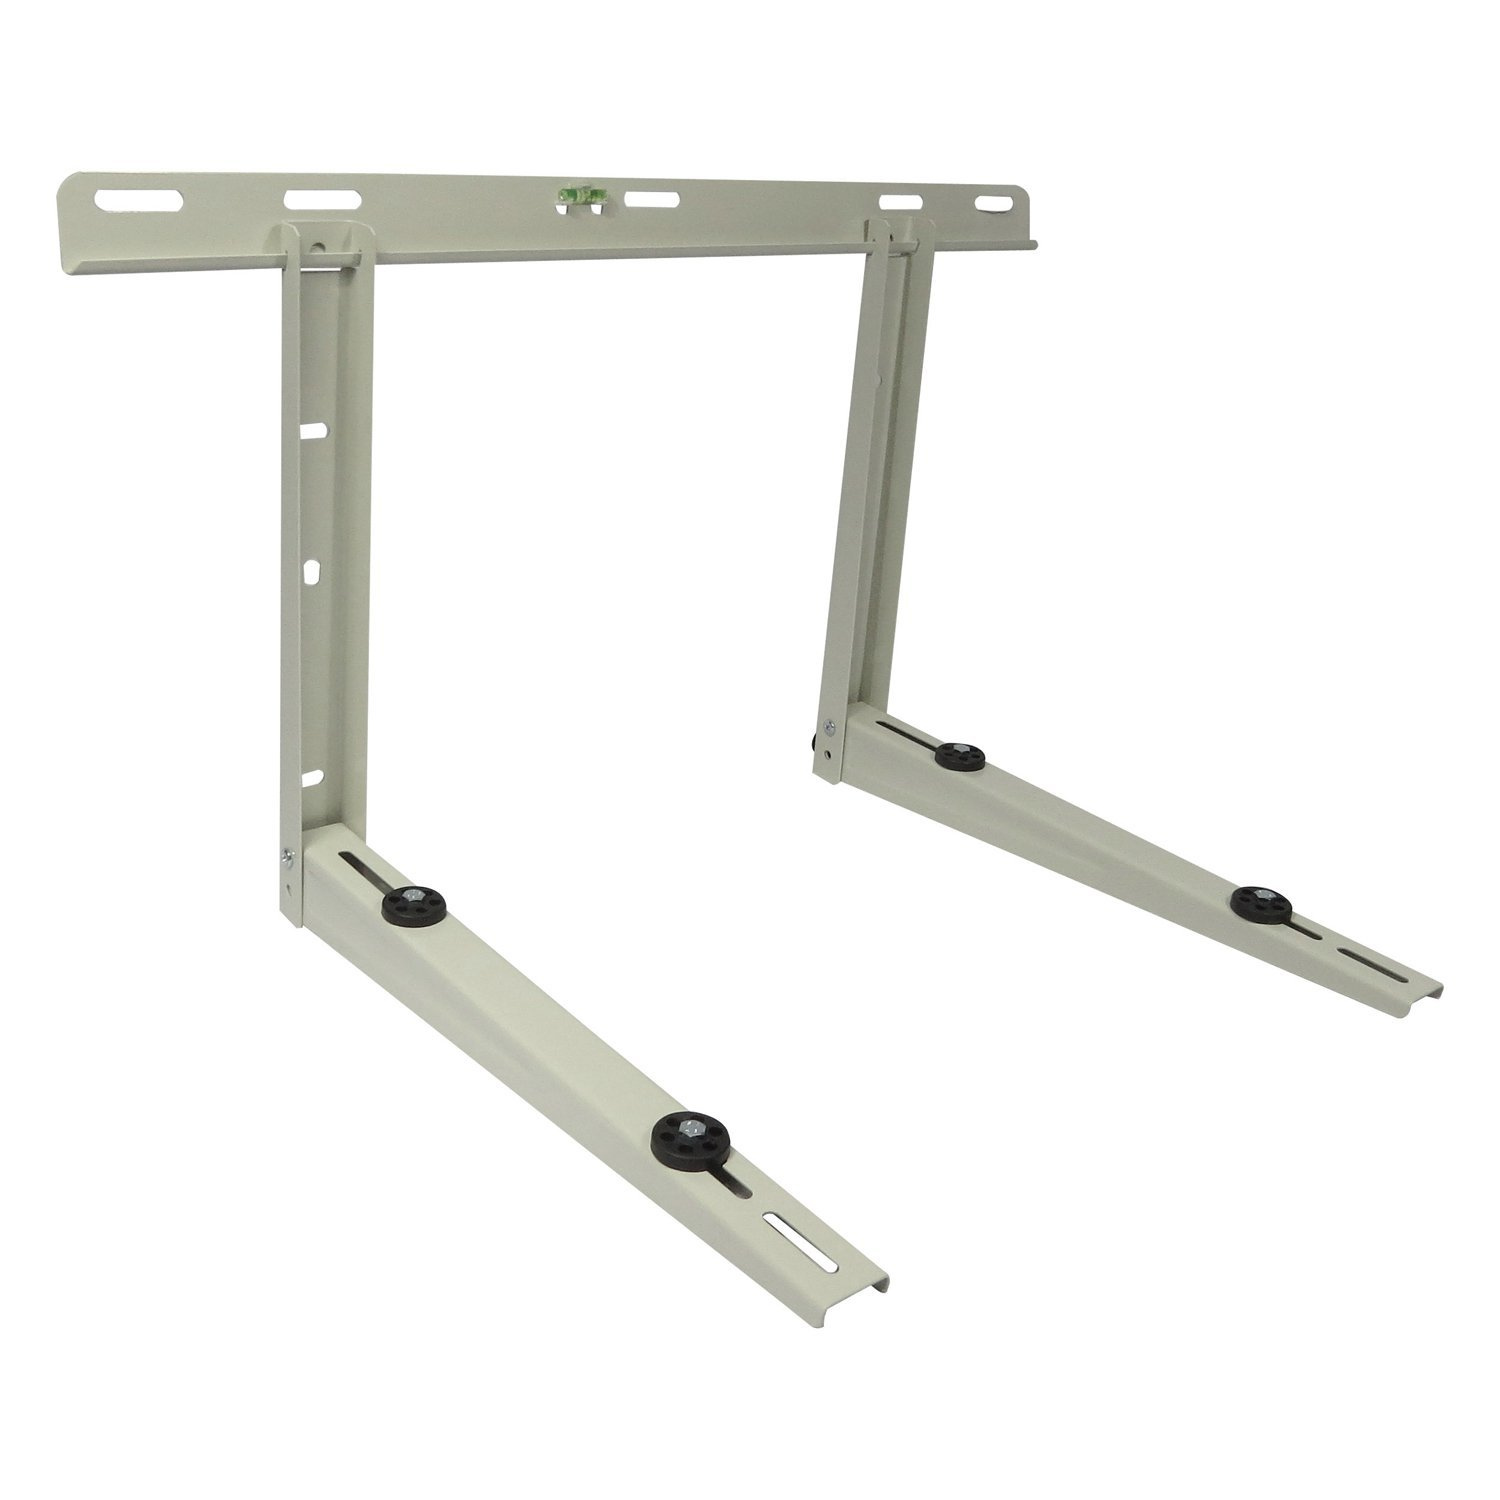 Mini Split Wall Bracket - Ductless Heat Pump Support - Condenser Mounting Rack for Air Conditioner. Painted Steel – Supports 9000 Btu to 36000 Btu Mini Split Systems